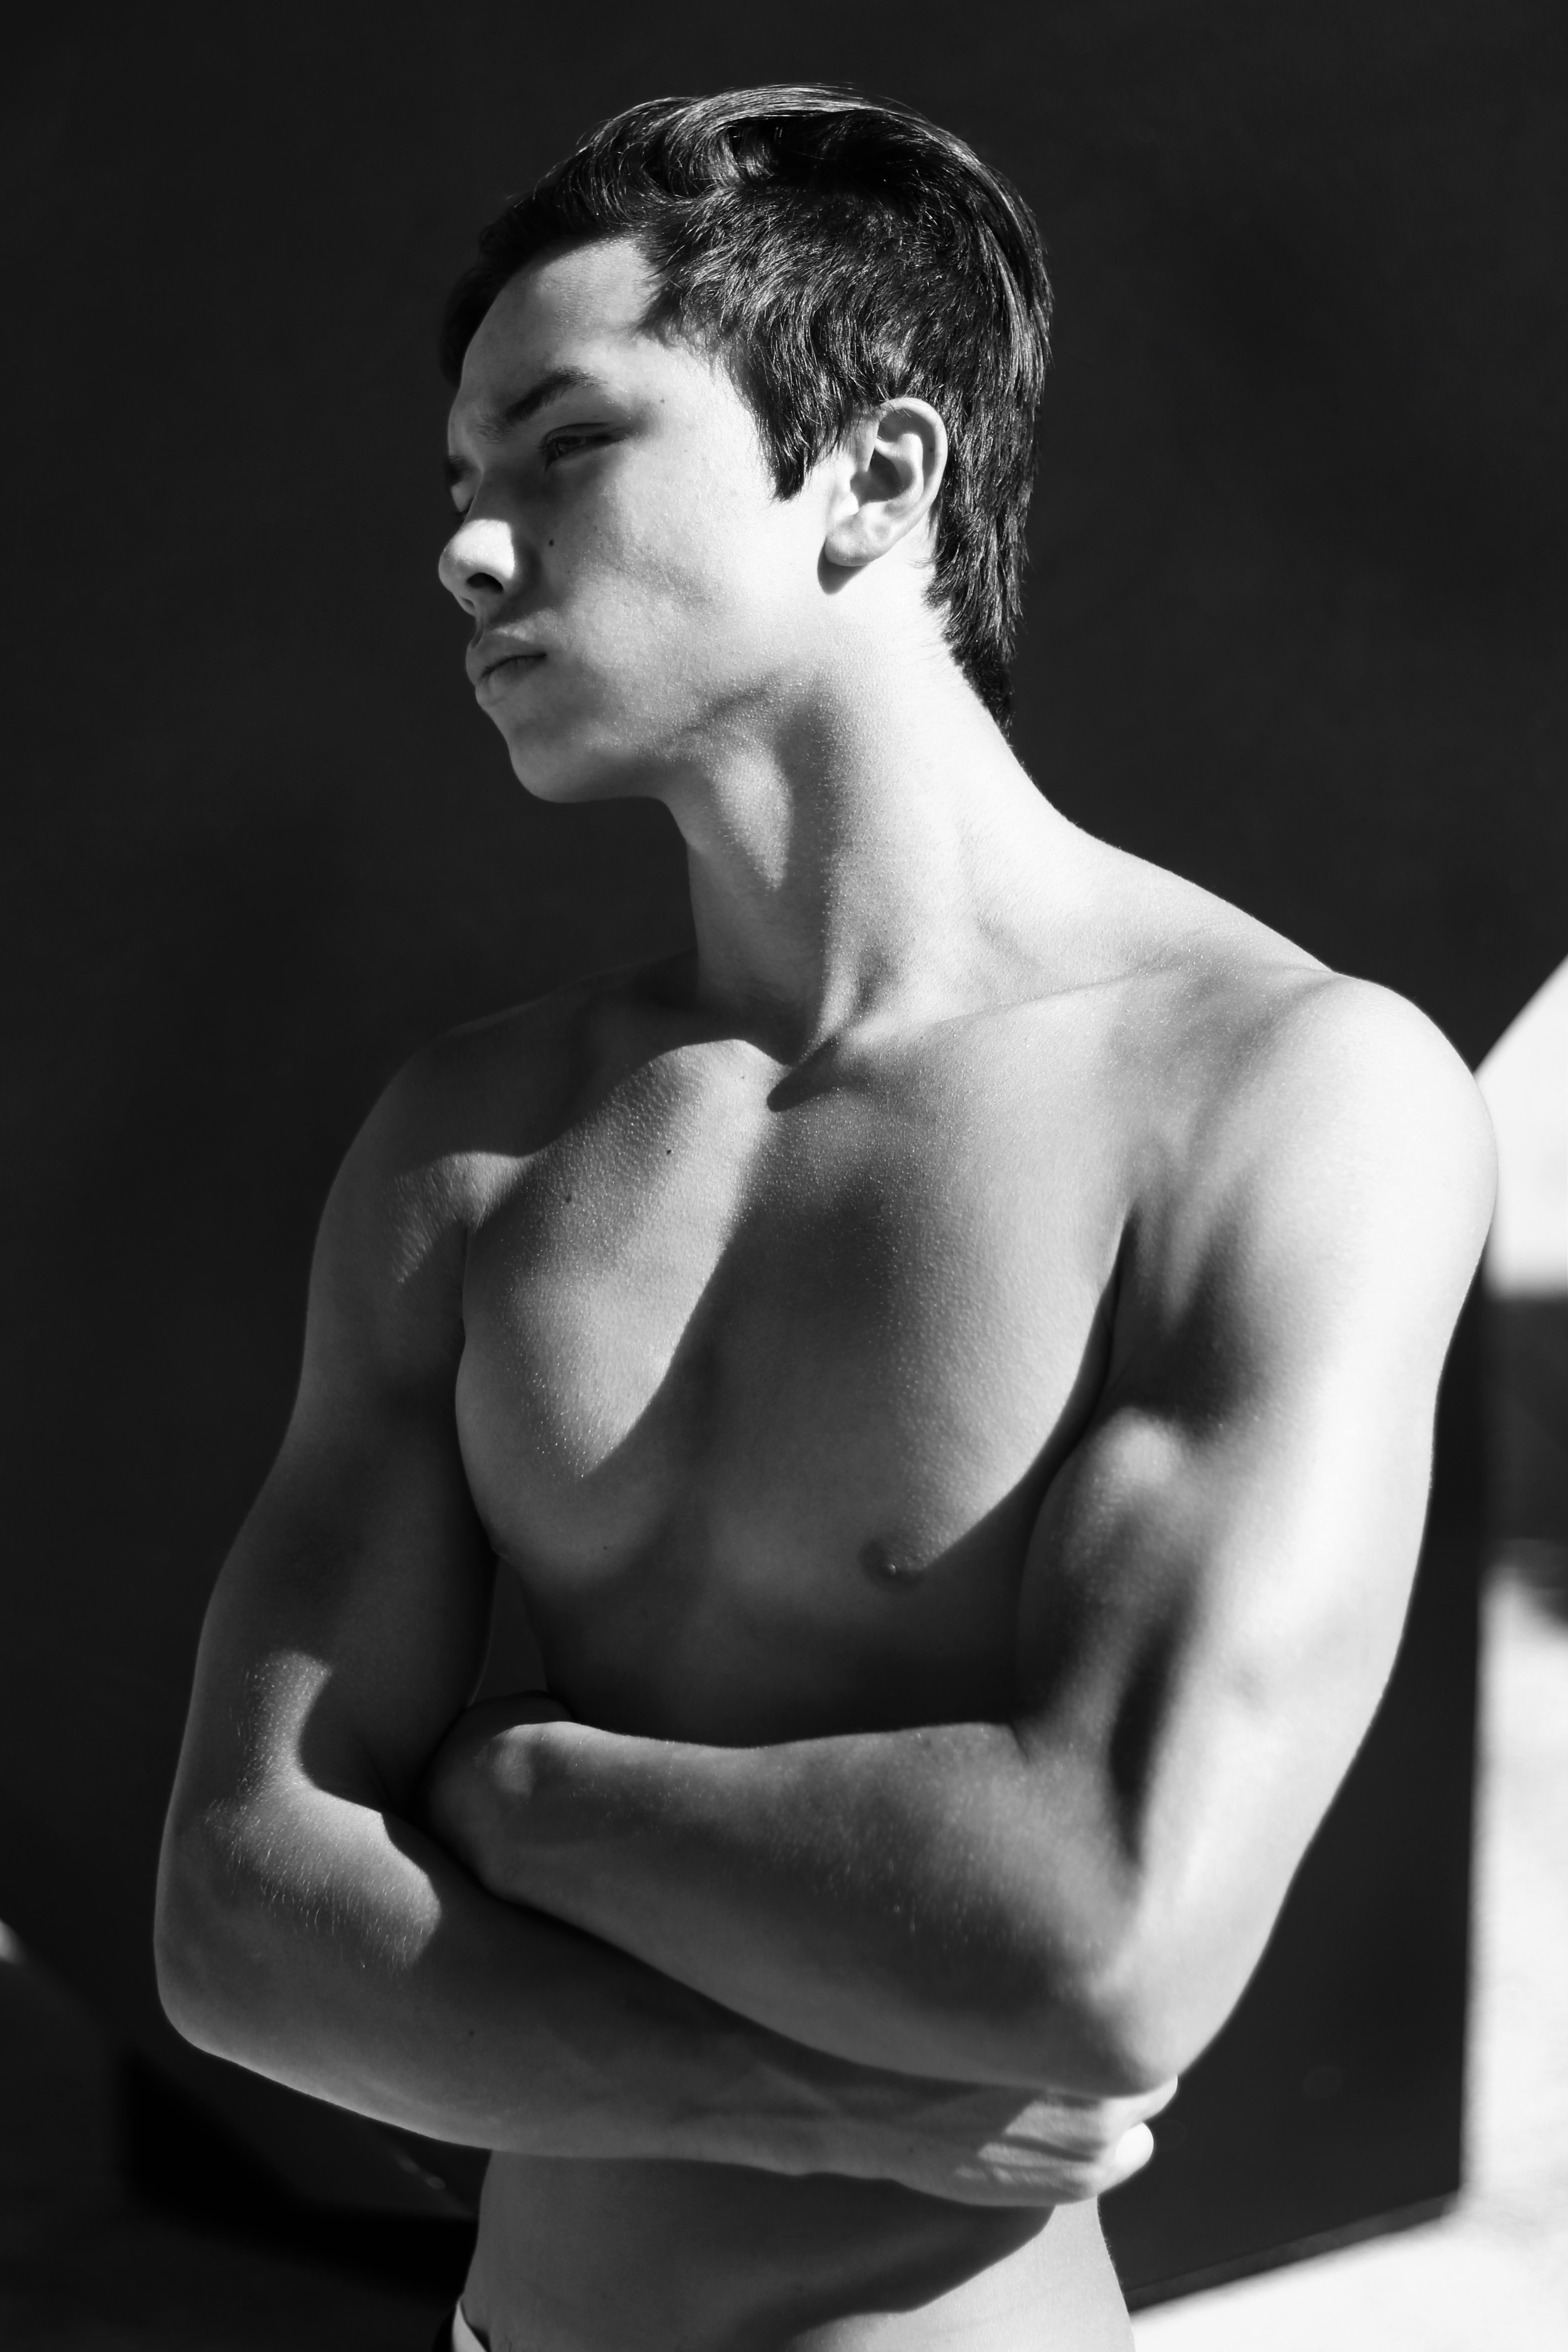 Black and white photo of a shirtless man showing his chest